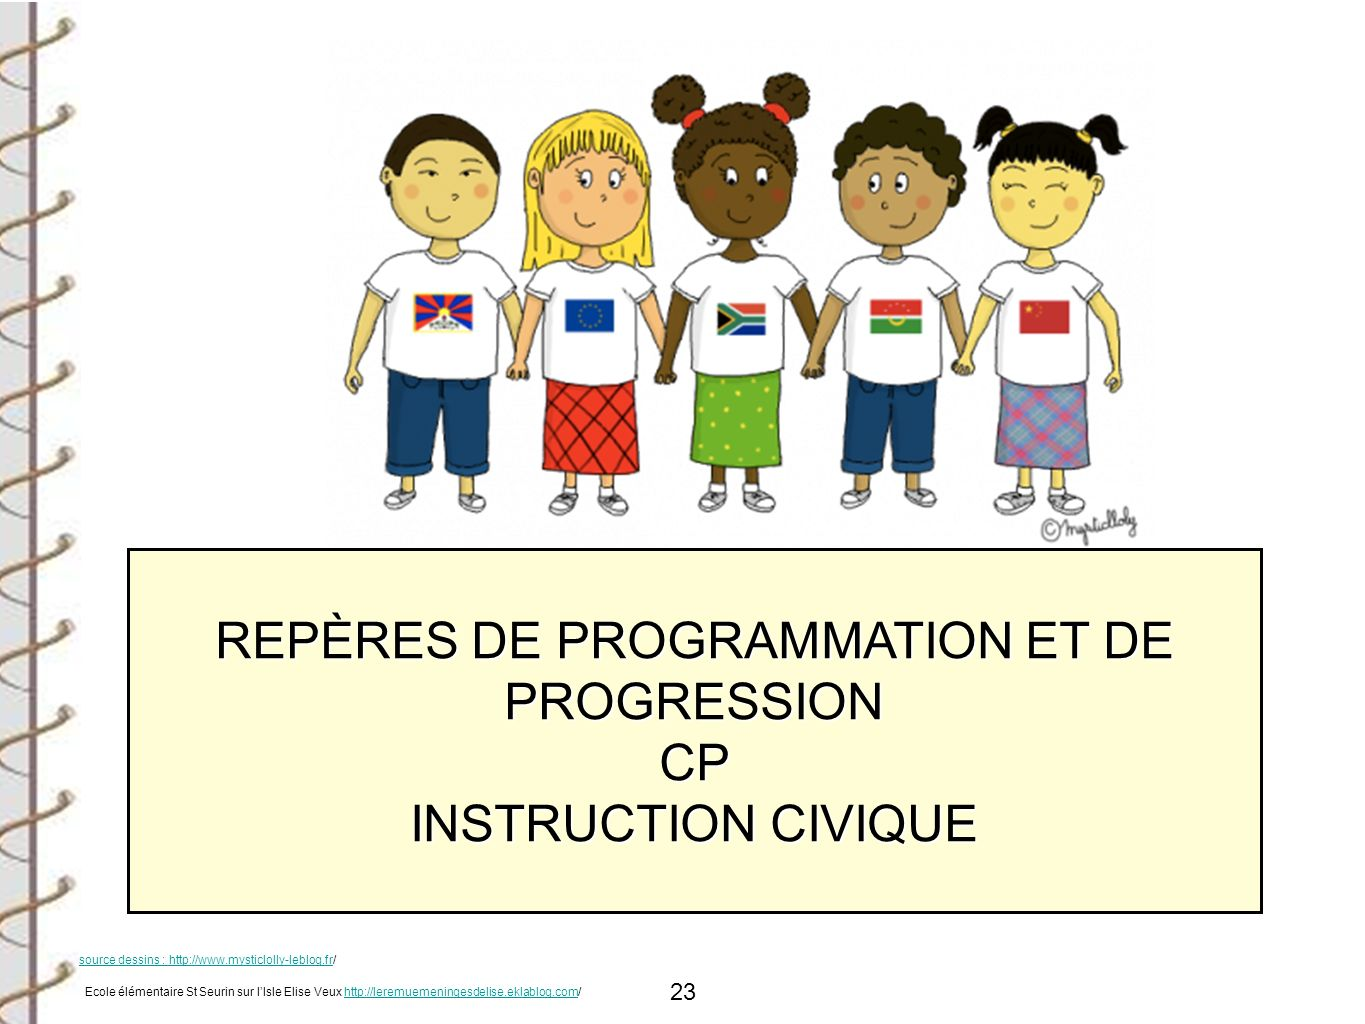 REPÈRES DE PROGRAMMATION ET DE PROGRESSION CP INSTRUCTION CIVIQUE